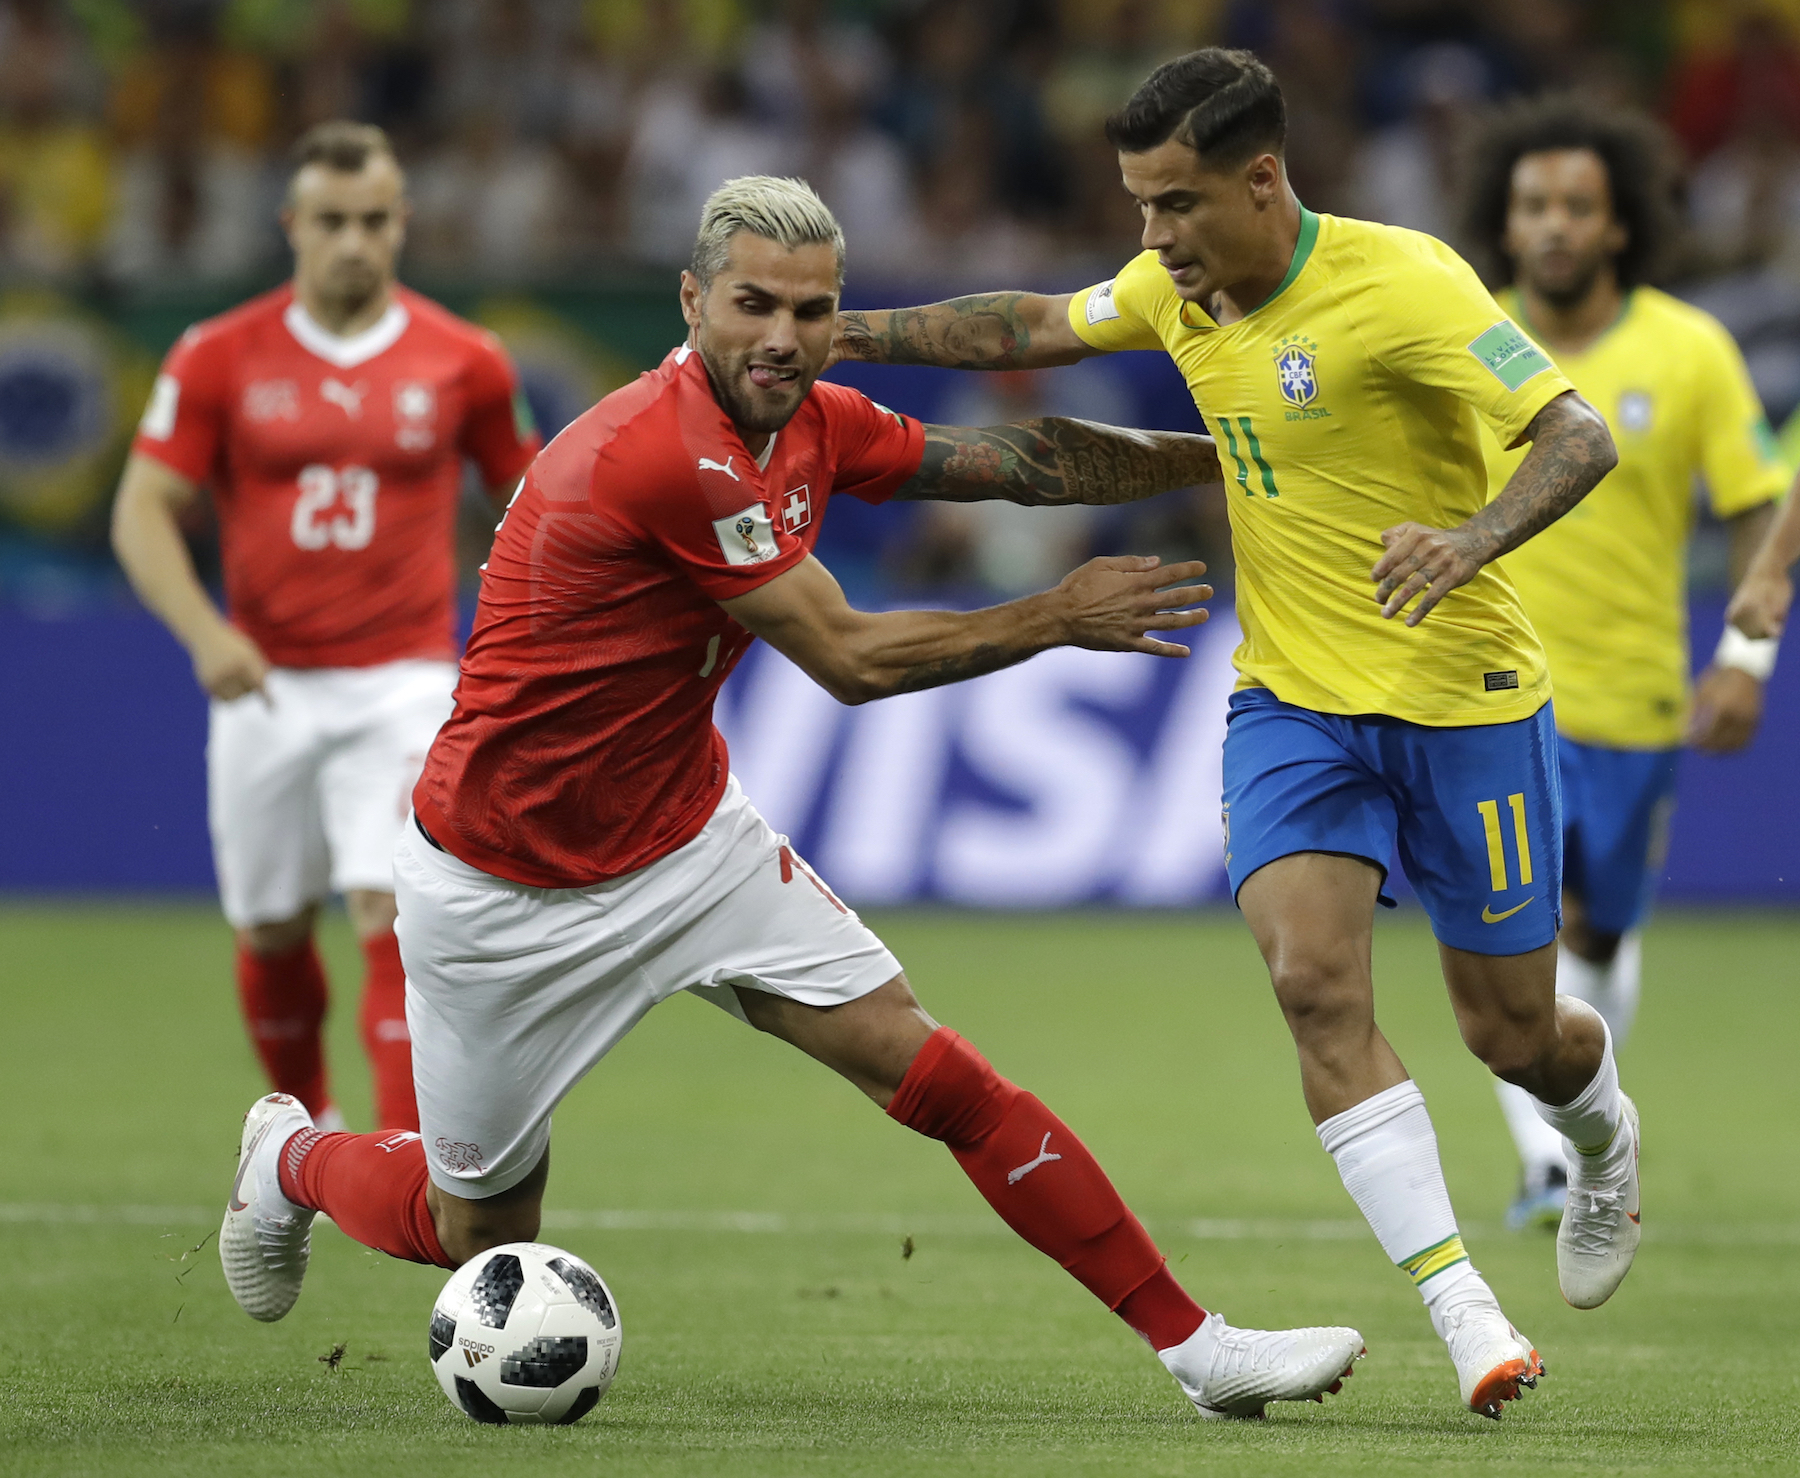 "<div class=""meta image-caption""><div class=""origin-logo origin-image ap""><span>AP</span></div><span class=""caption-text"">Switzerland's Valon Behrami, left, and Brazil's Philippe Coutinho challenge for the ball during the group E match between Brazil and Switzerland at the 2018 soccer World Cup. (AP Photo/Themba Hadebe)</span></div>"